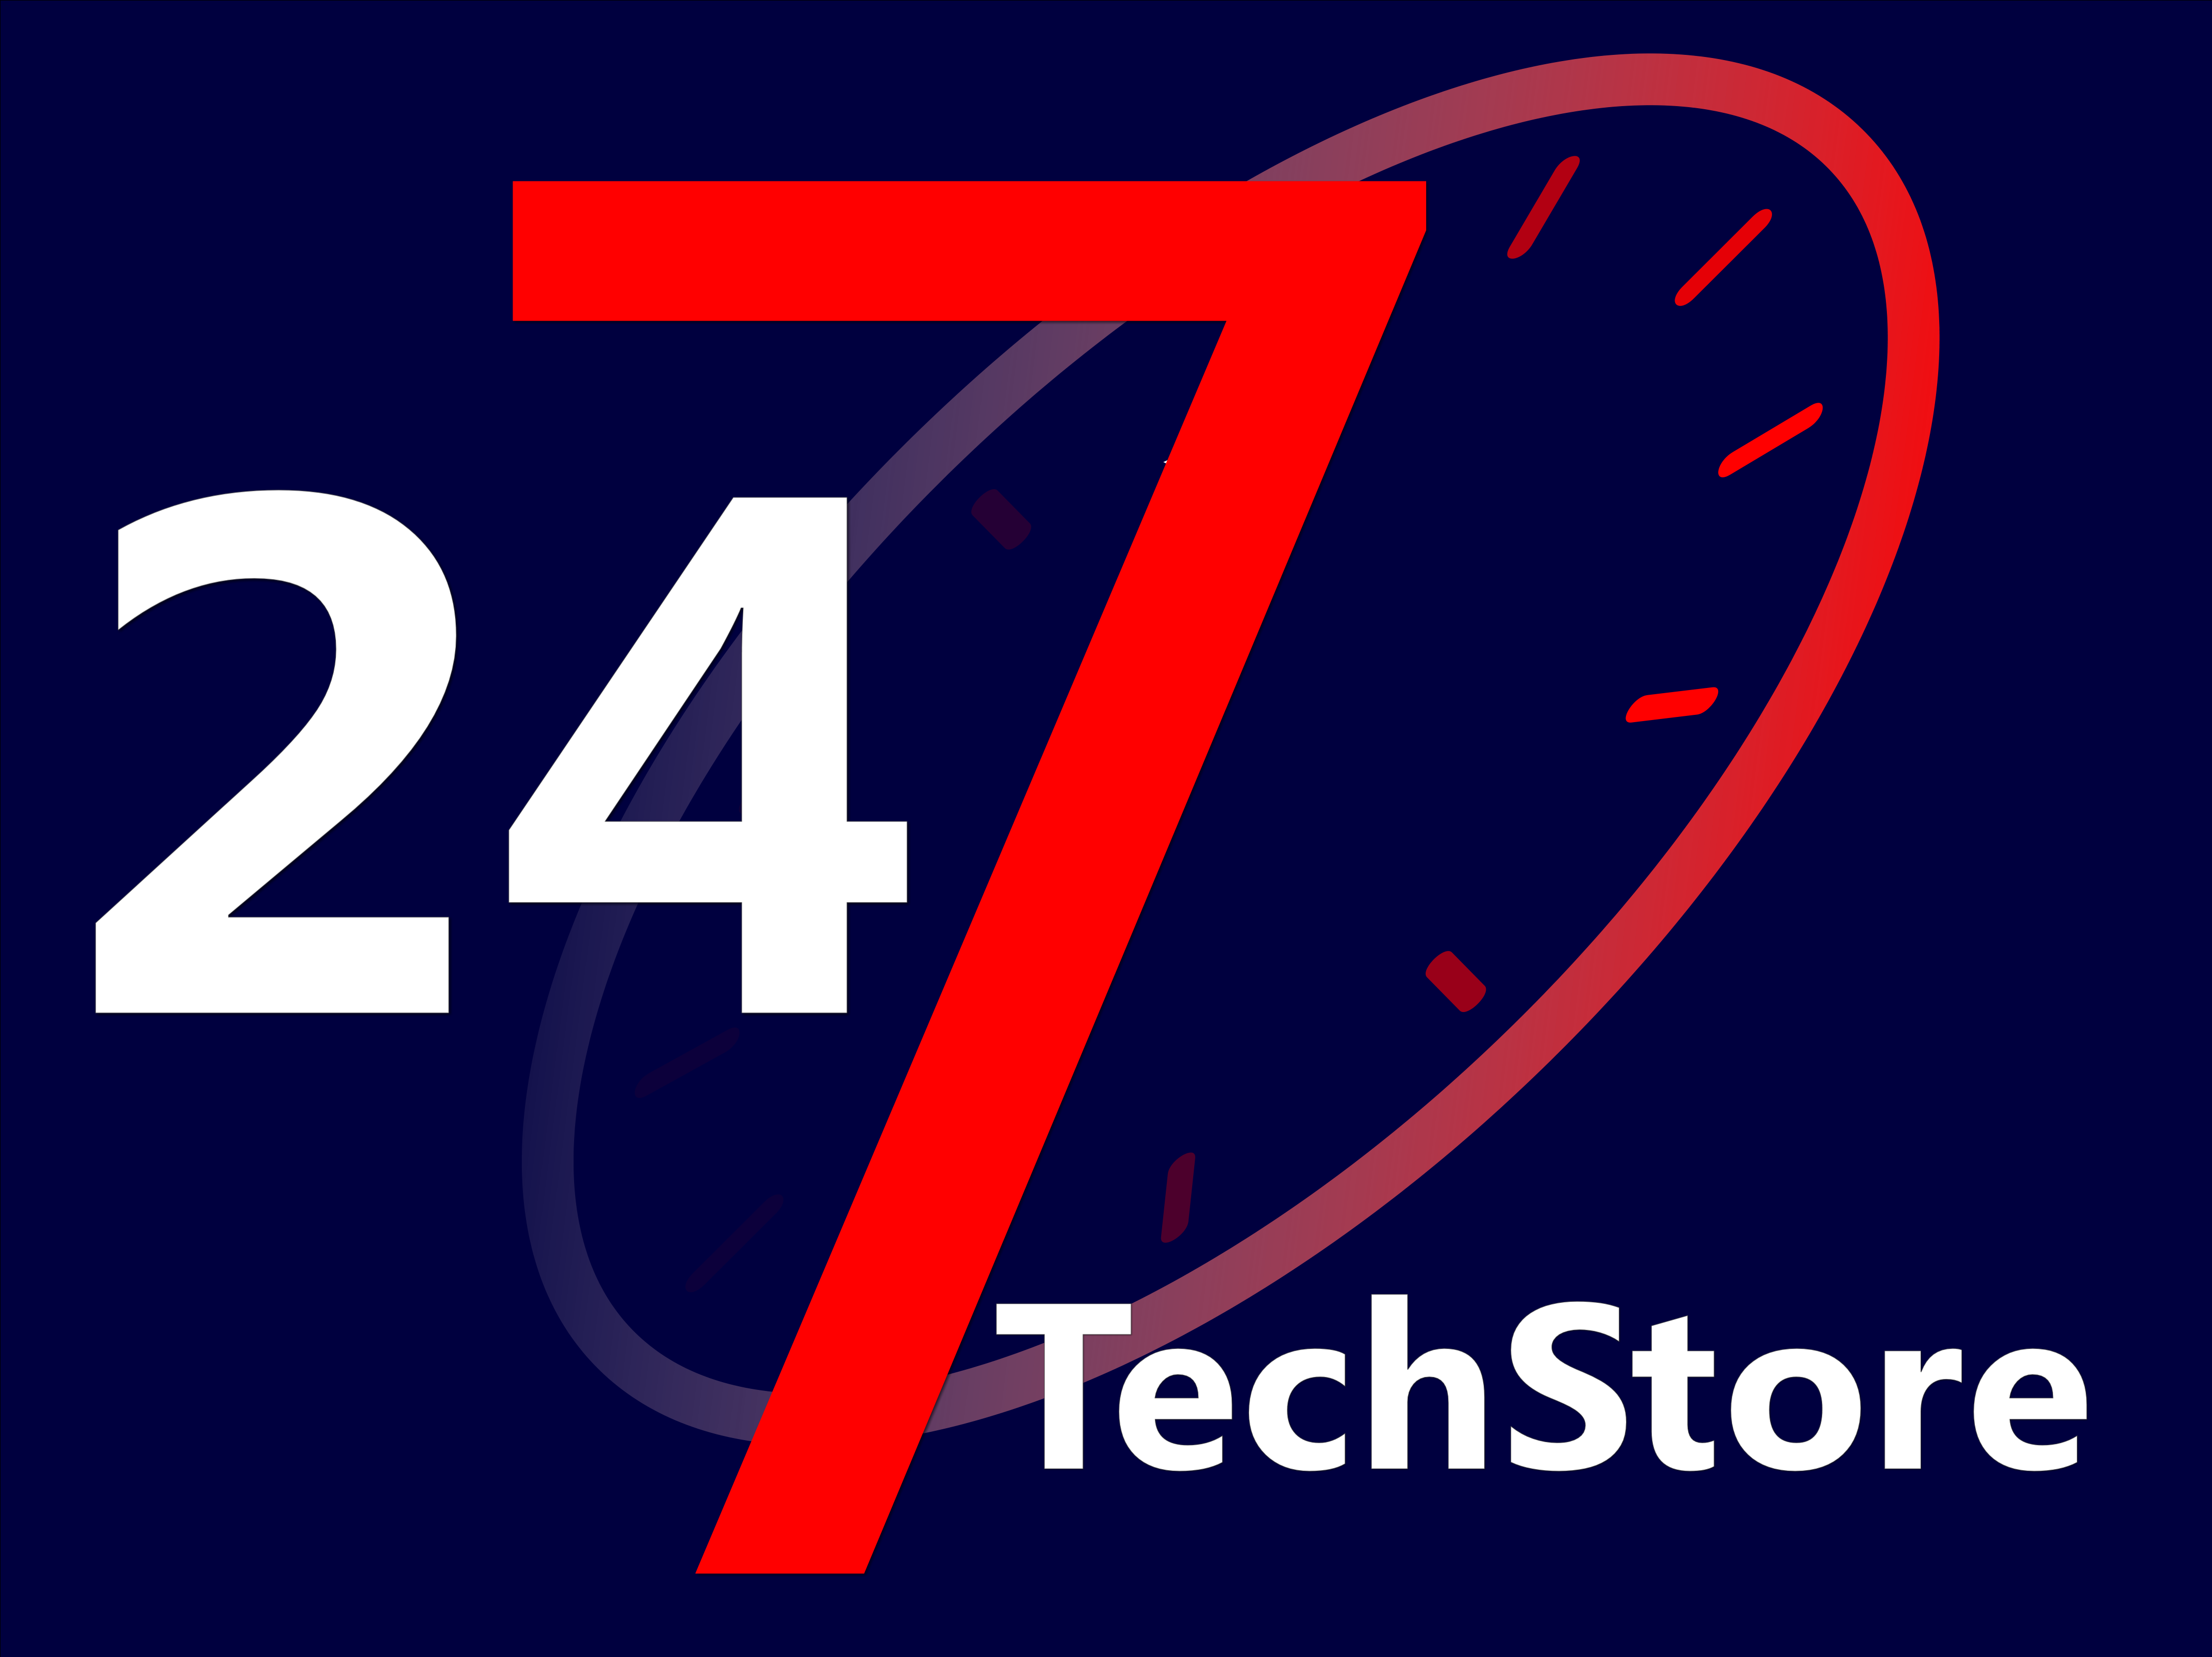 Logo247techstore blue background